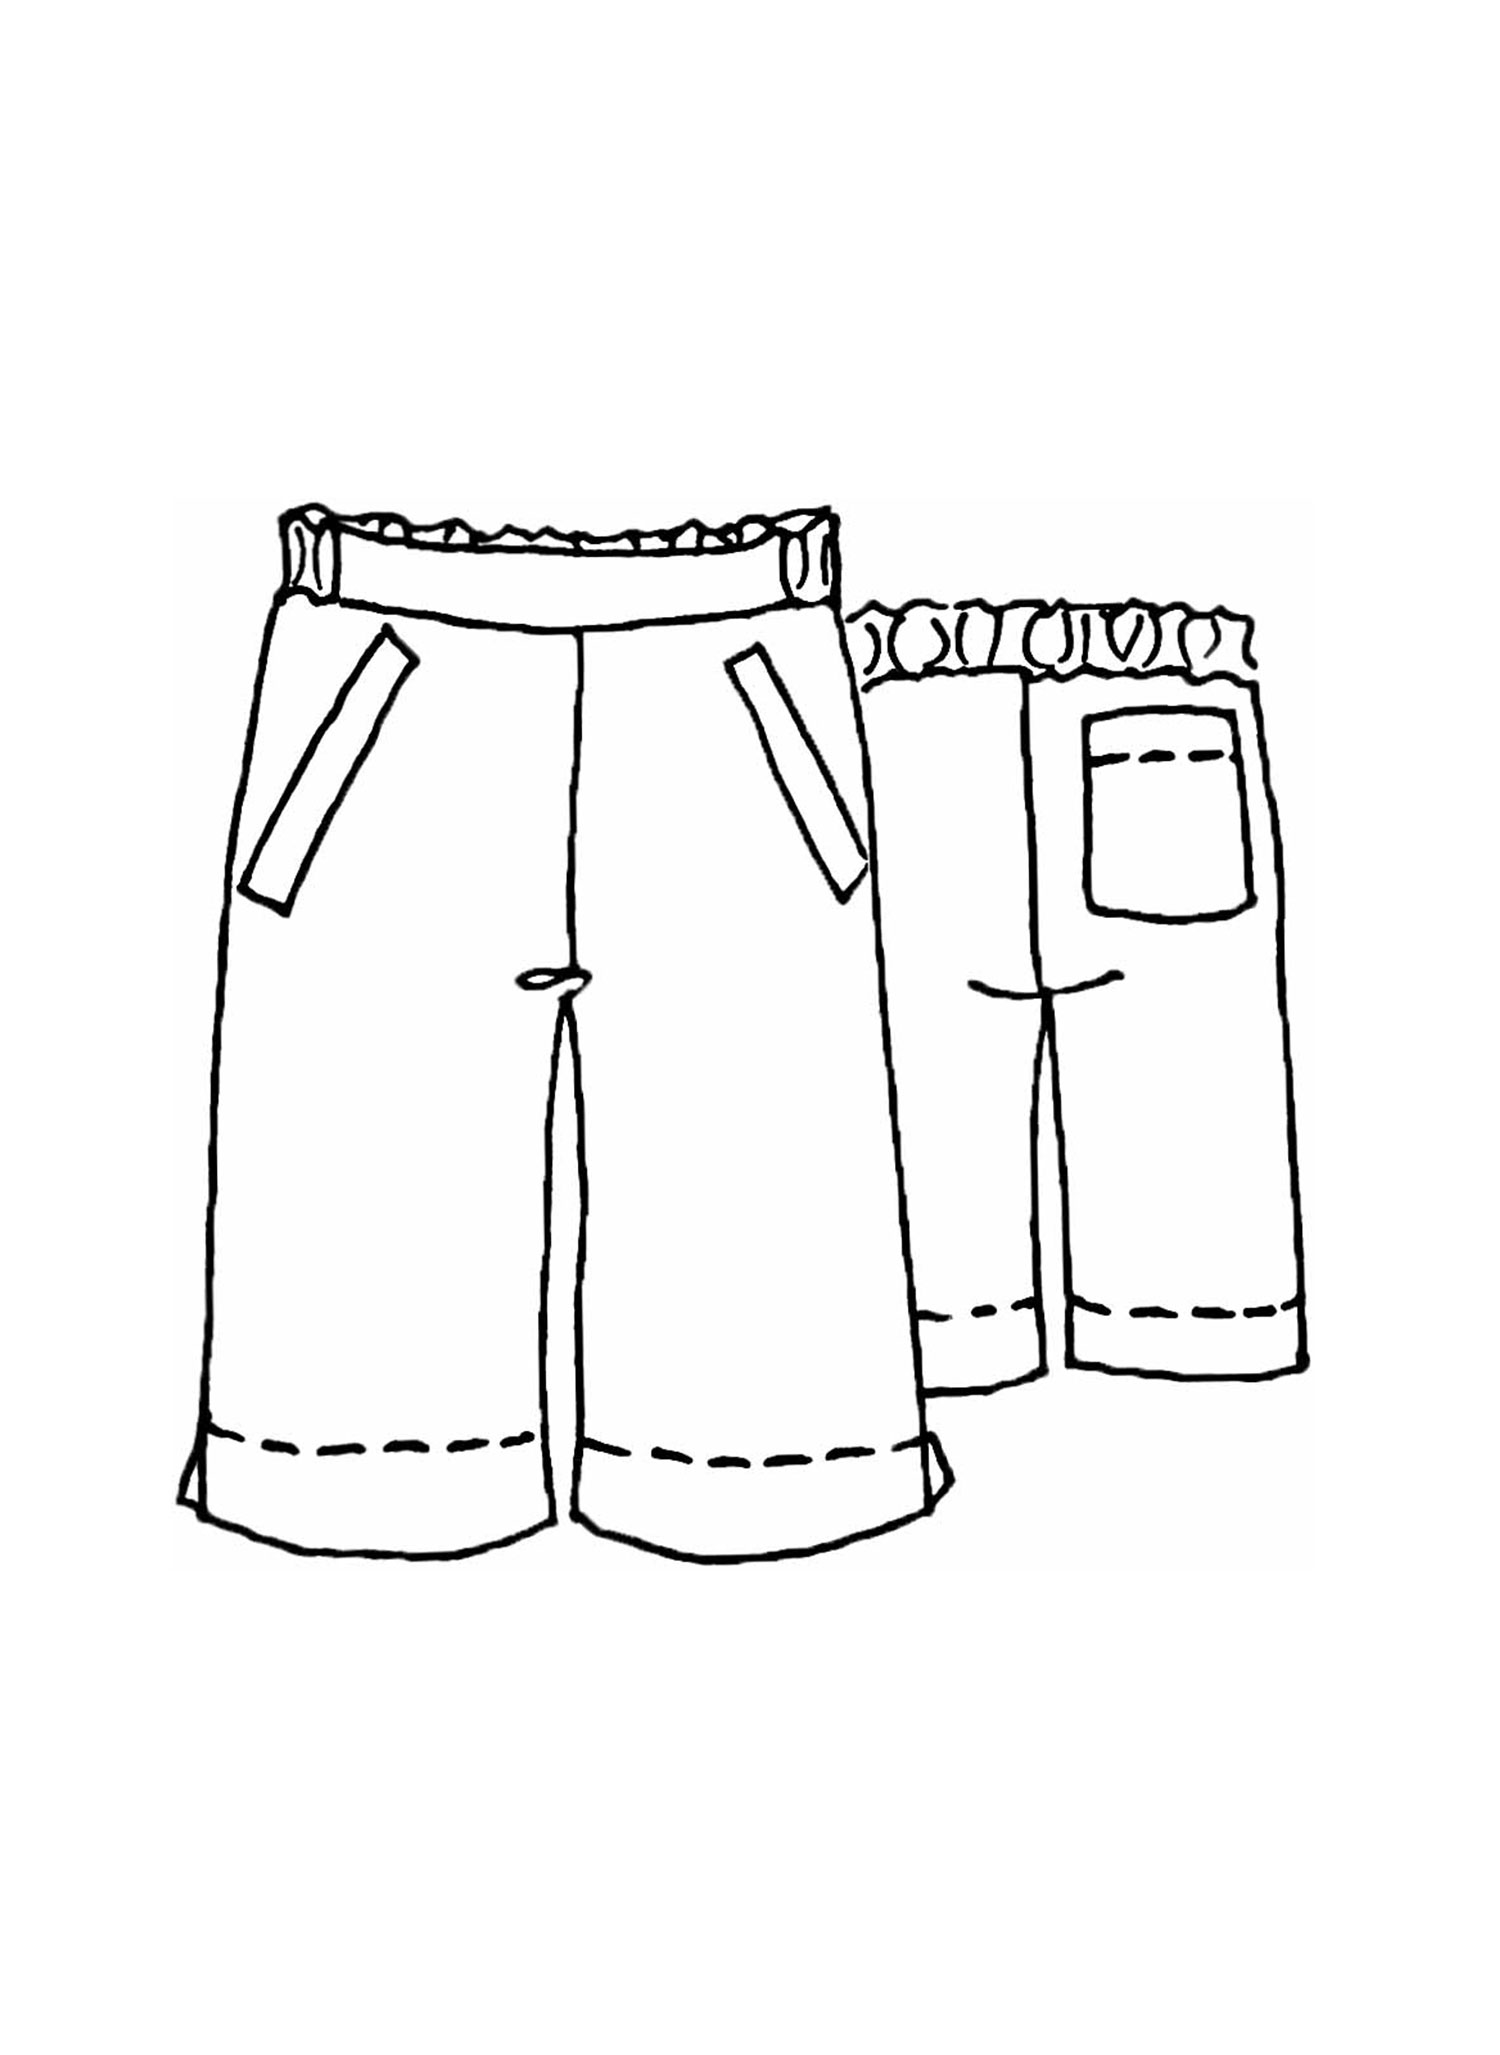 Explorer Shorts sketch image